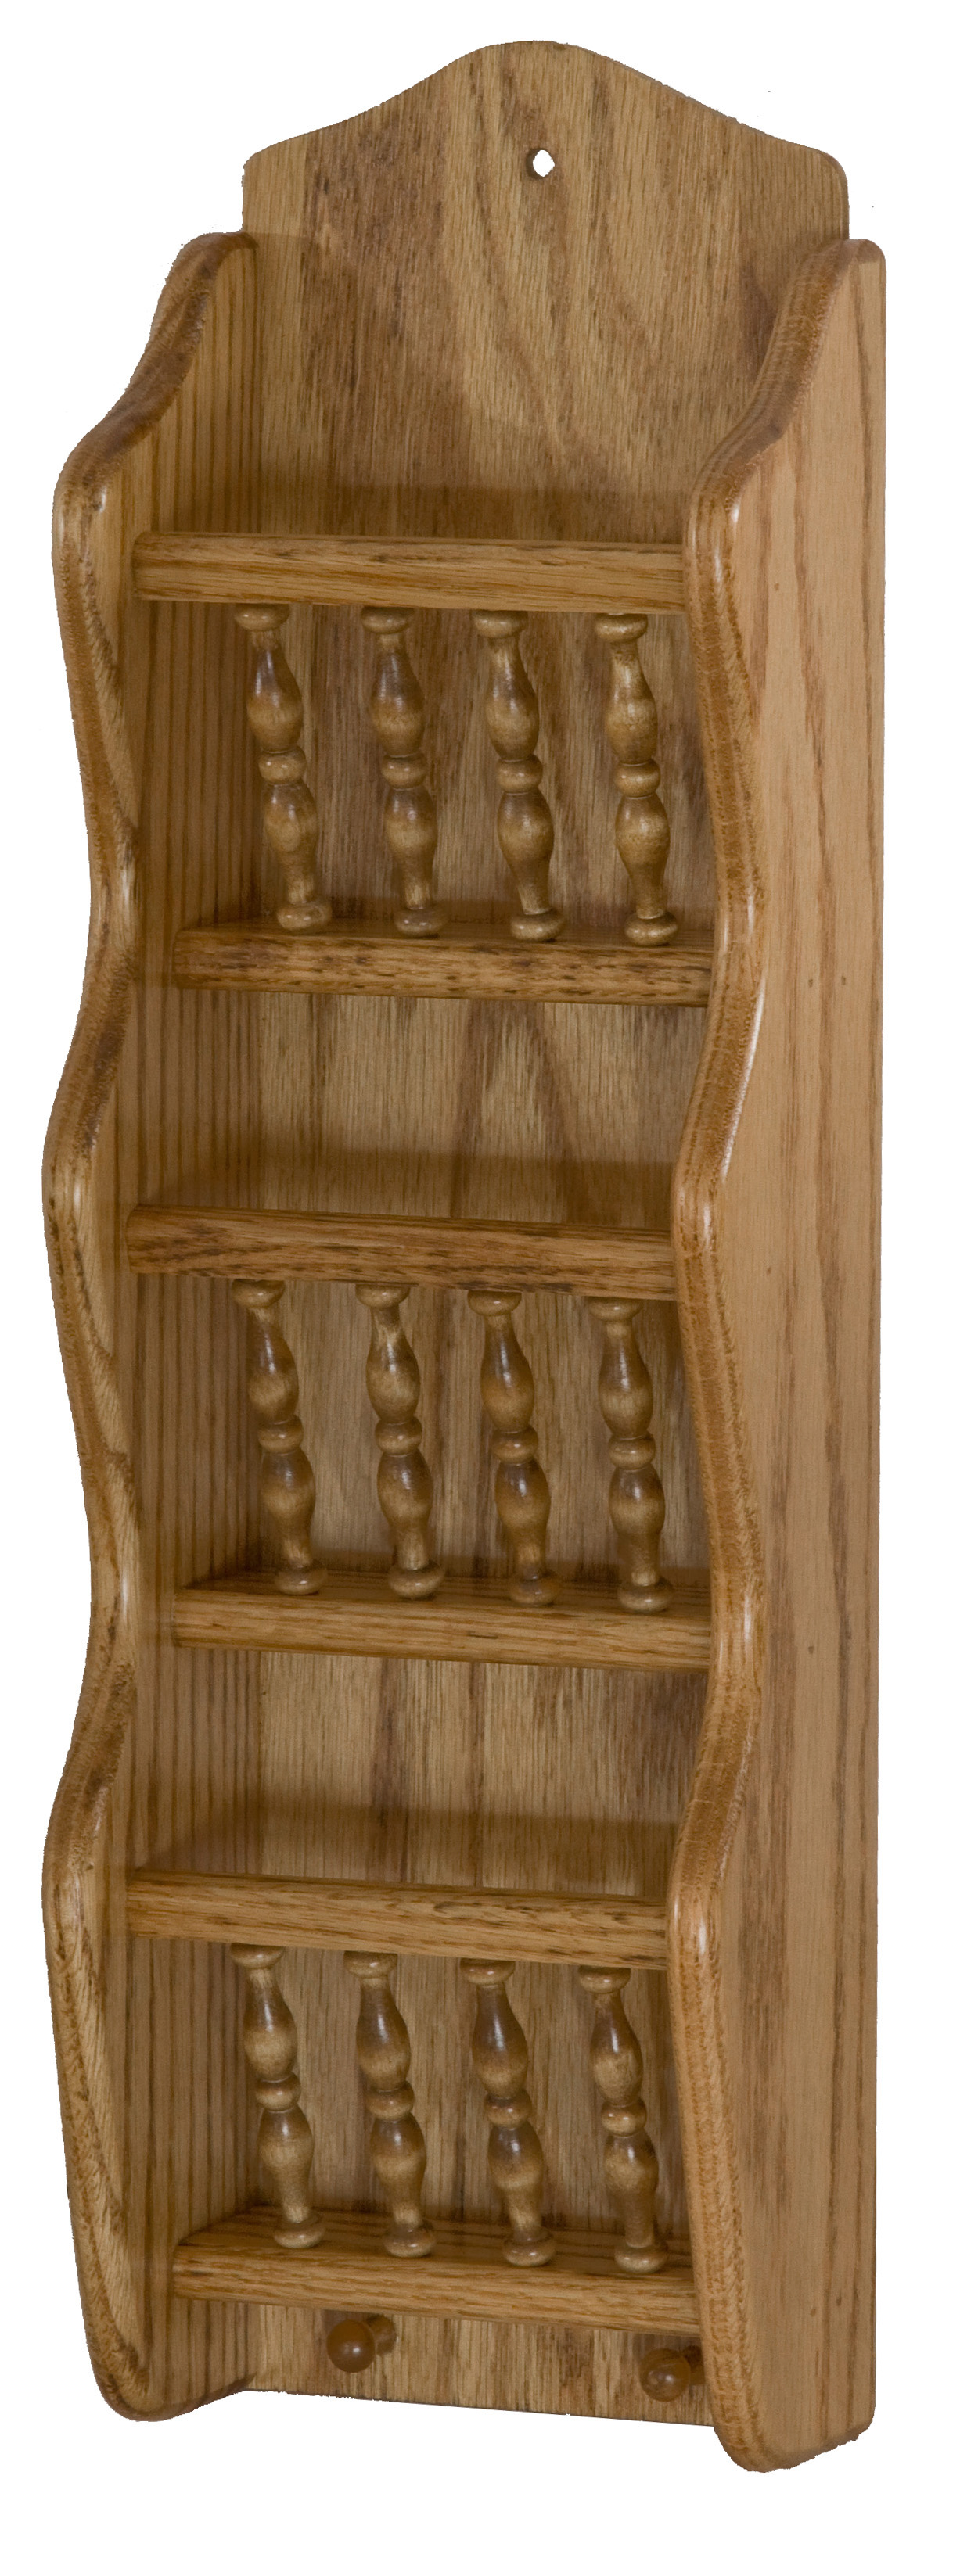 Three Tier Spindle Letter Holder Hardwood Creations